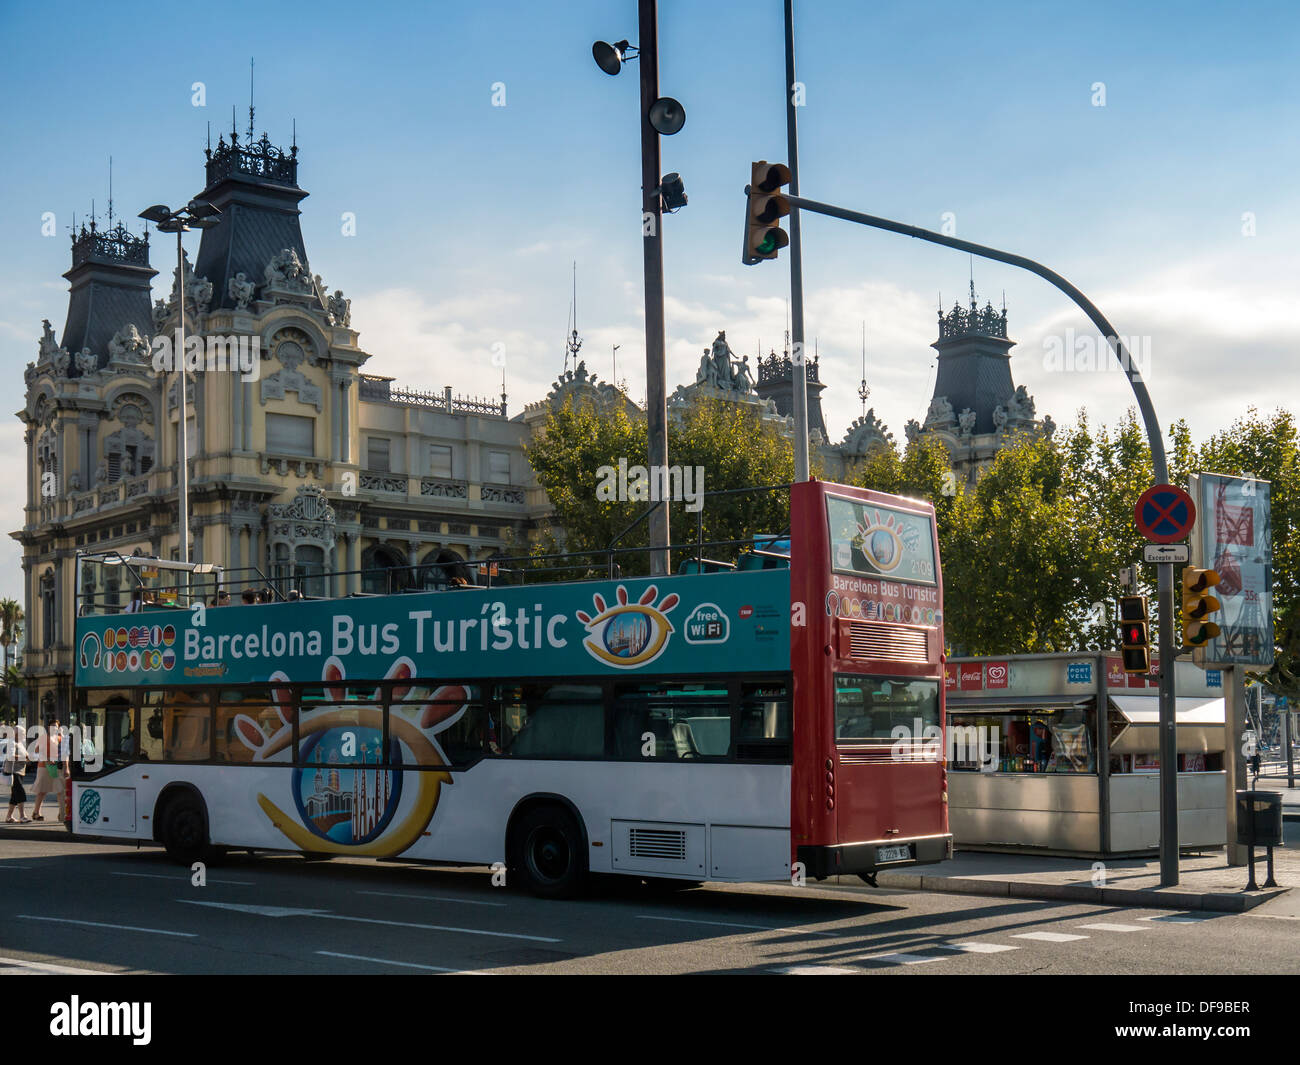 Tourist Bus in front of Old Port Authority Building in Port Vell area of Barcelona - Stock Image